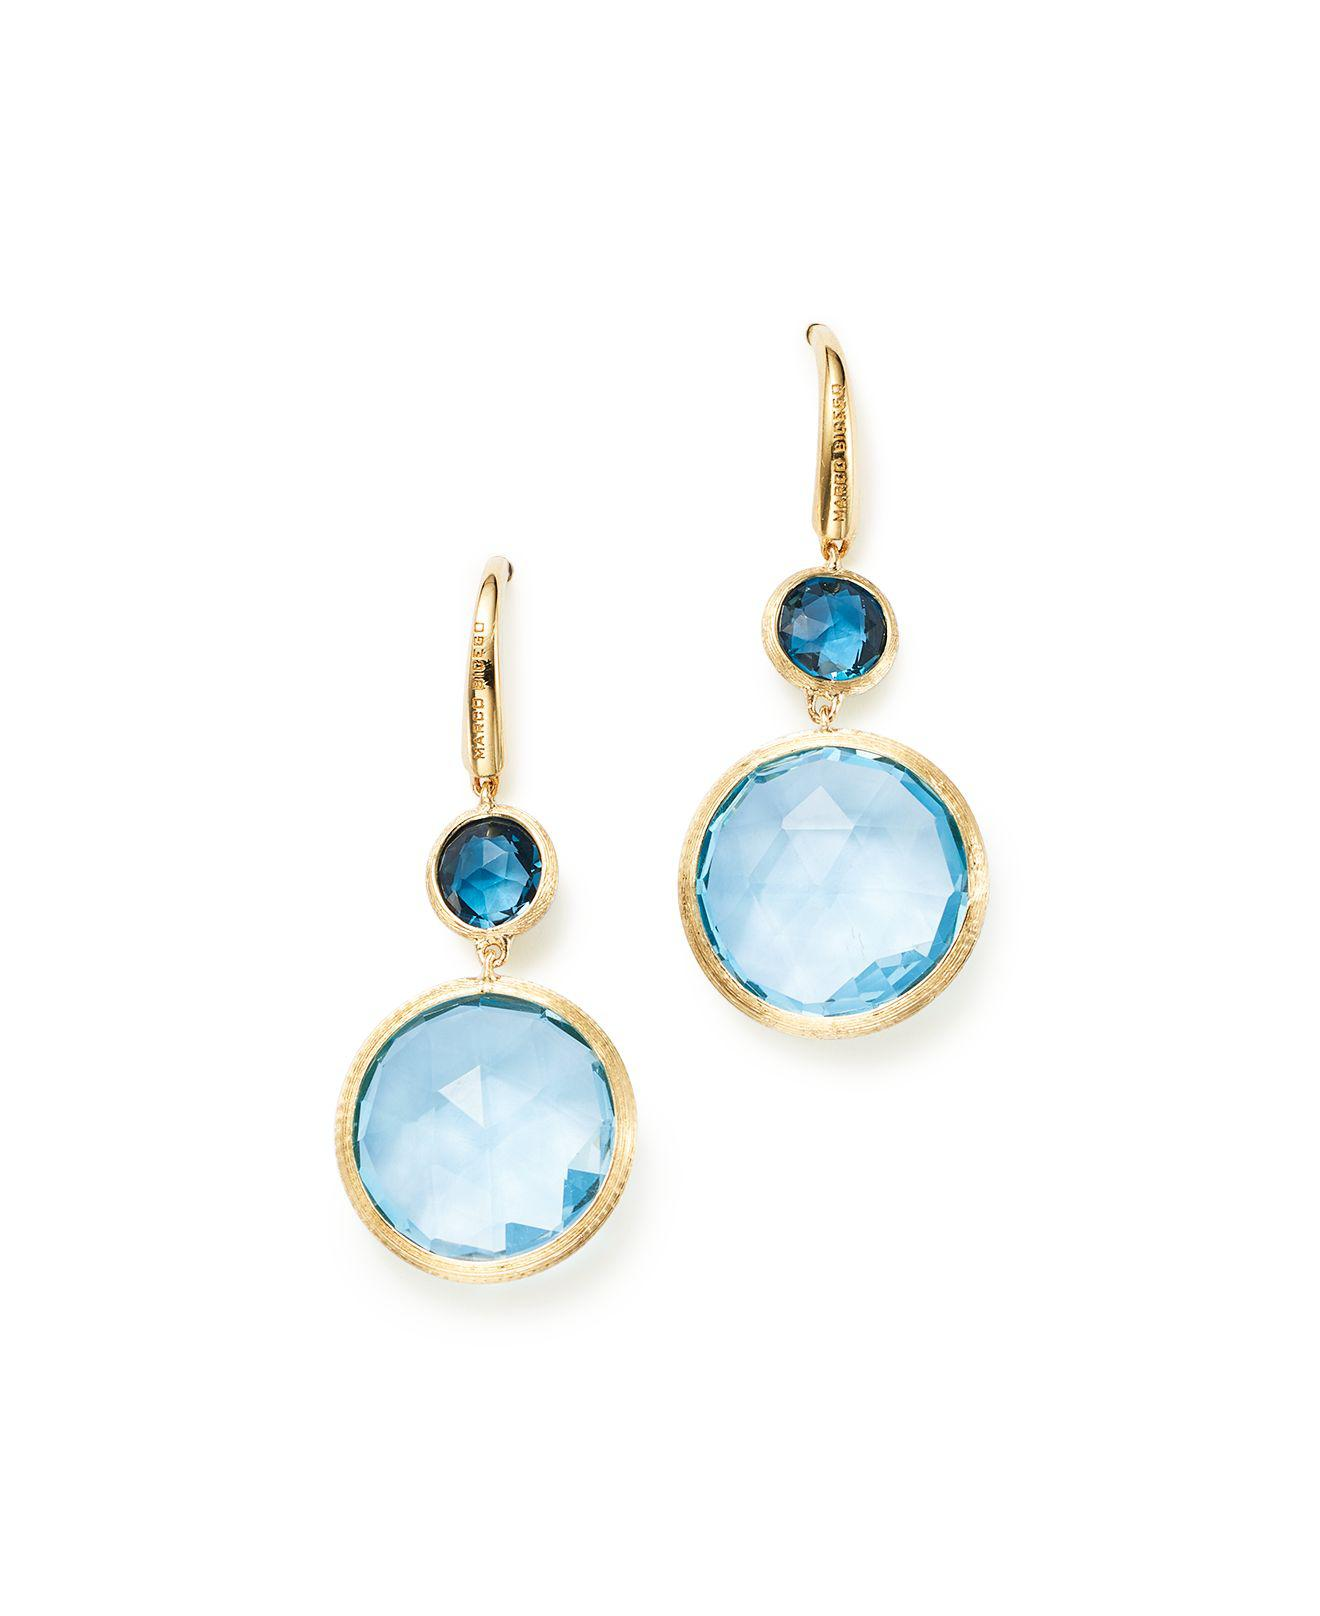 Marco Bicego Jaipur 18K Gold Mixed Semiprecious Stone Drop Earrings